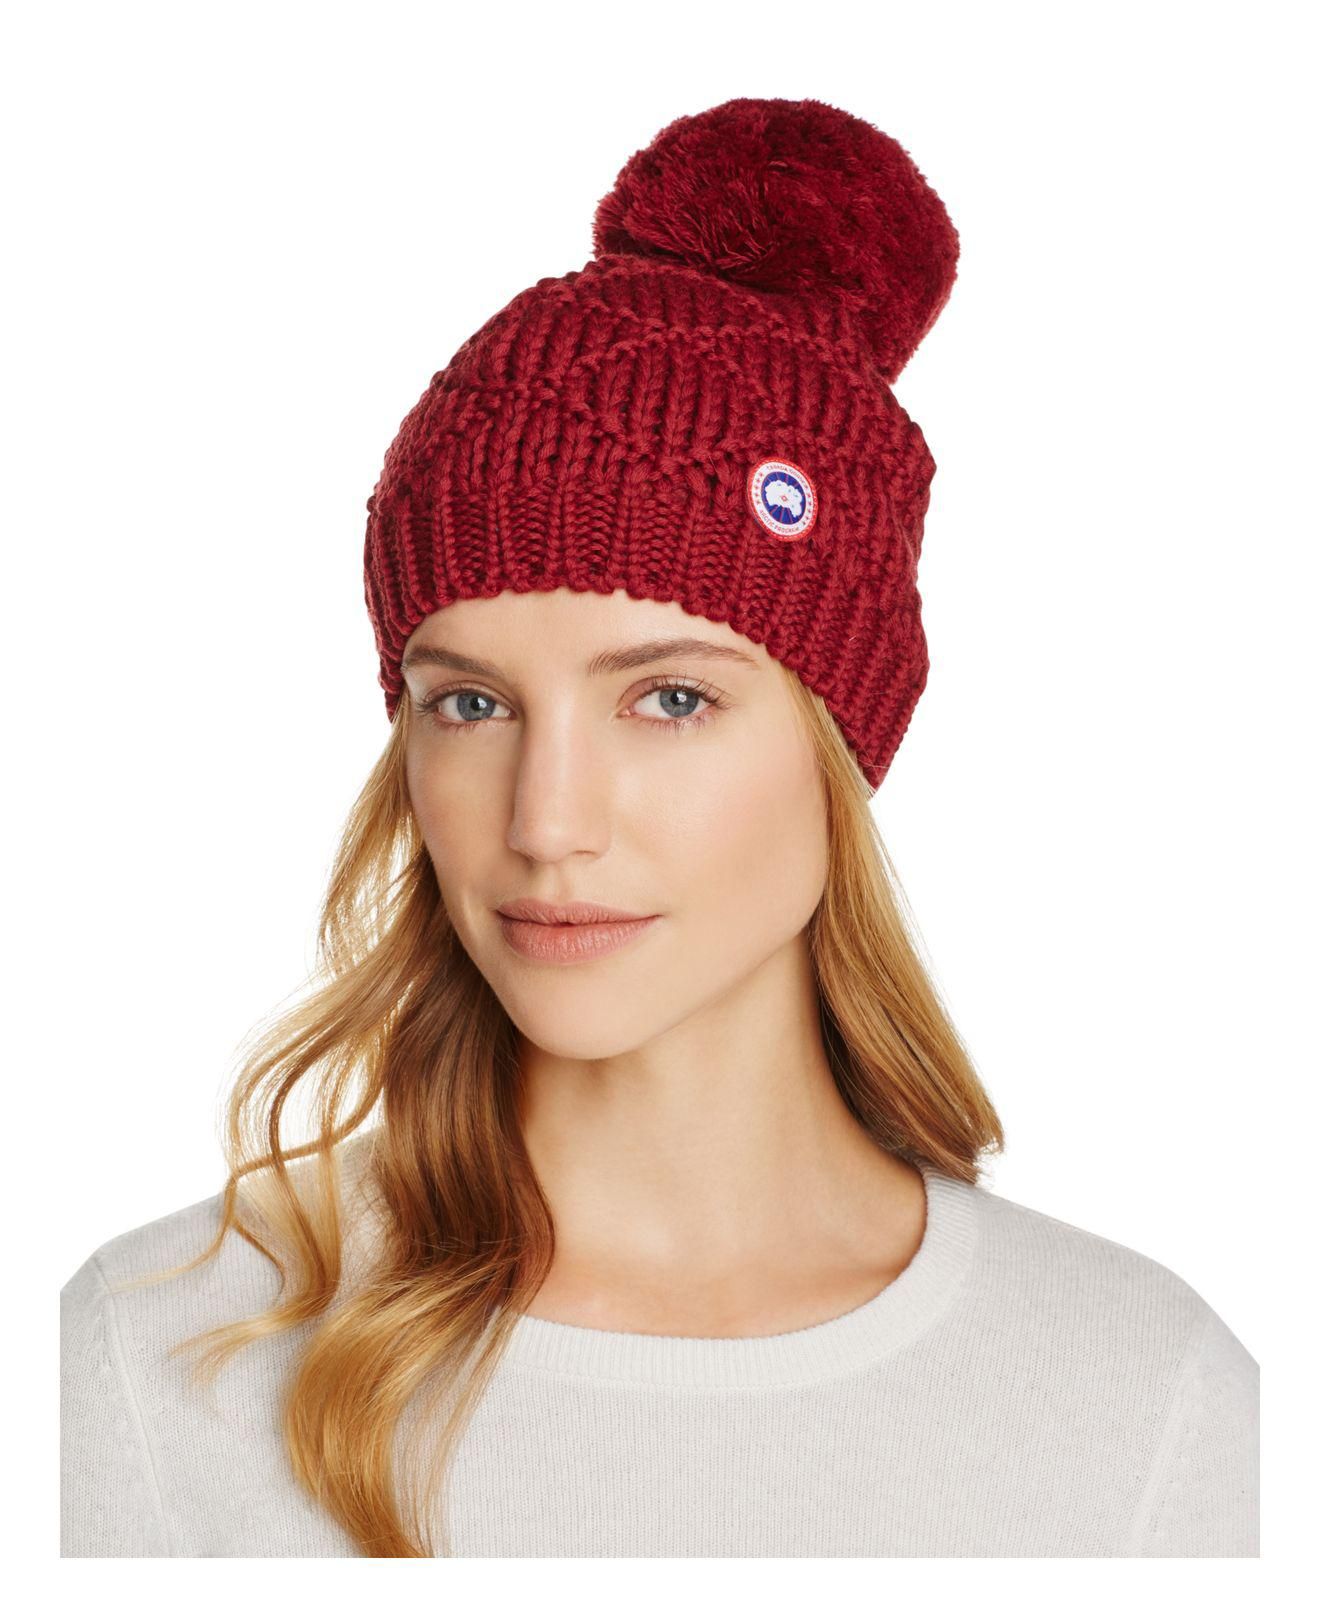 d802ceaab Canada Goose Merino Wool Beanie With Oversized Pom-pom in Red - Lyst